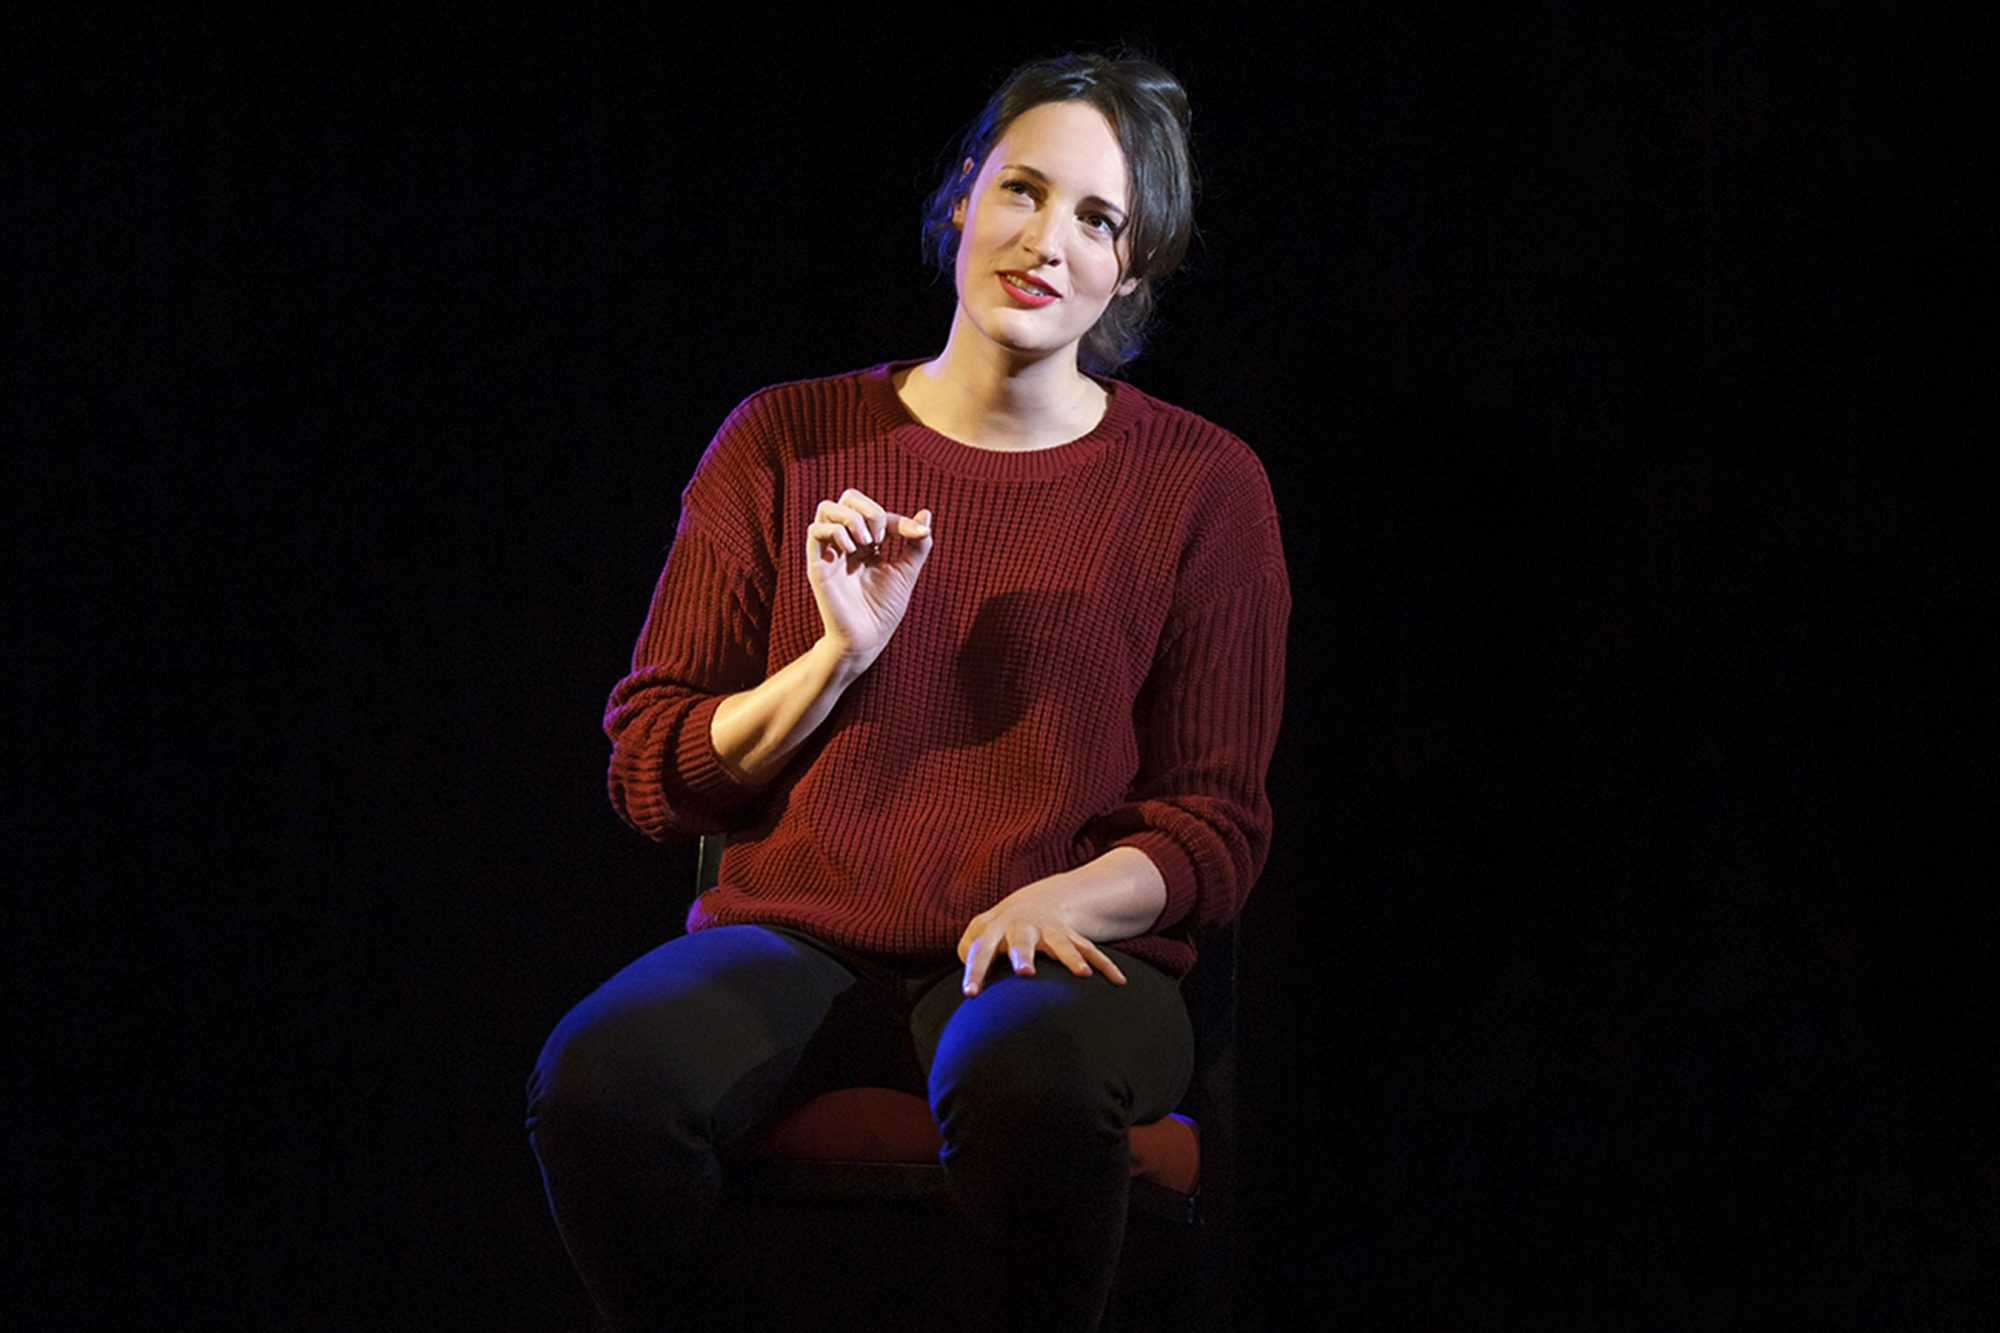 Phoebe Waller-Bridge's 'Fleabag' play to stream on Amazon for charity